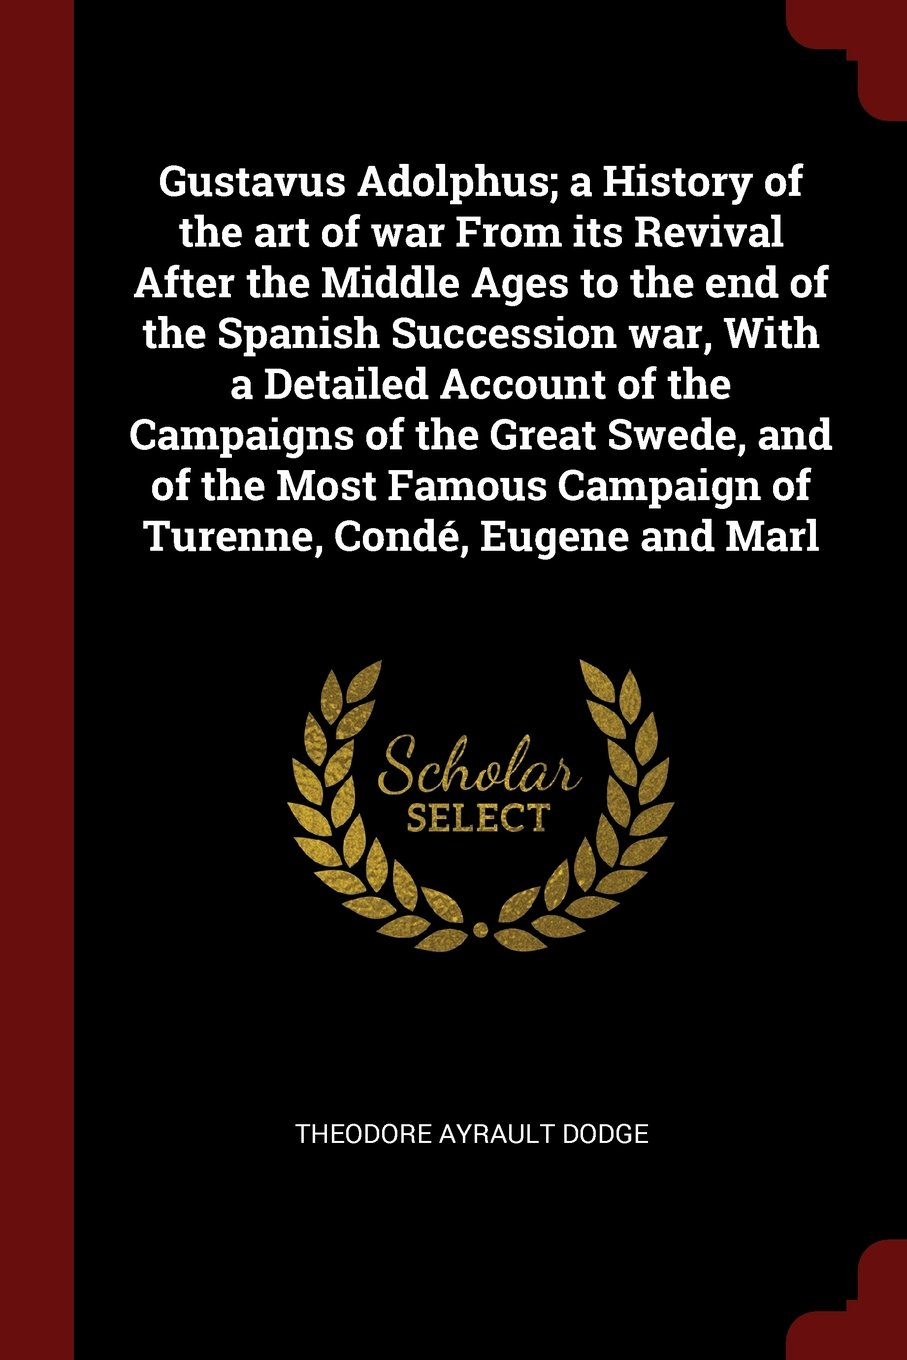 Download Gustavus Adolphus; a History of the art of war From its Revival After the Middle Ages to the end of the Spanish Succession war, With a Detailed ... Campaign of Turenne, Condé, Eugene and Marl ebook